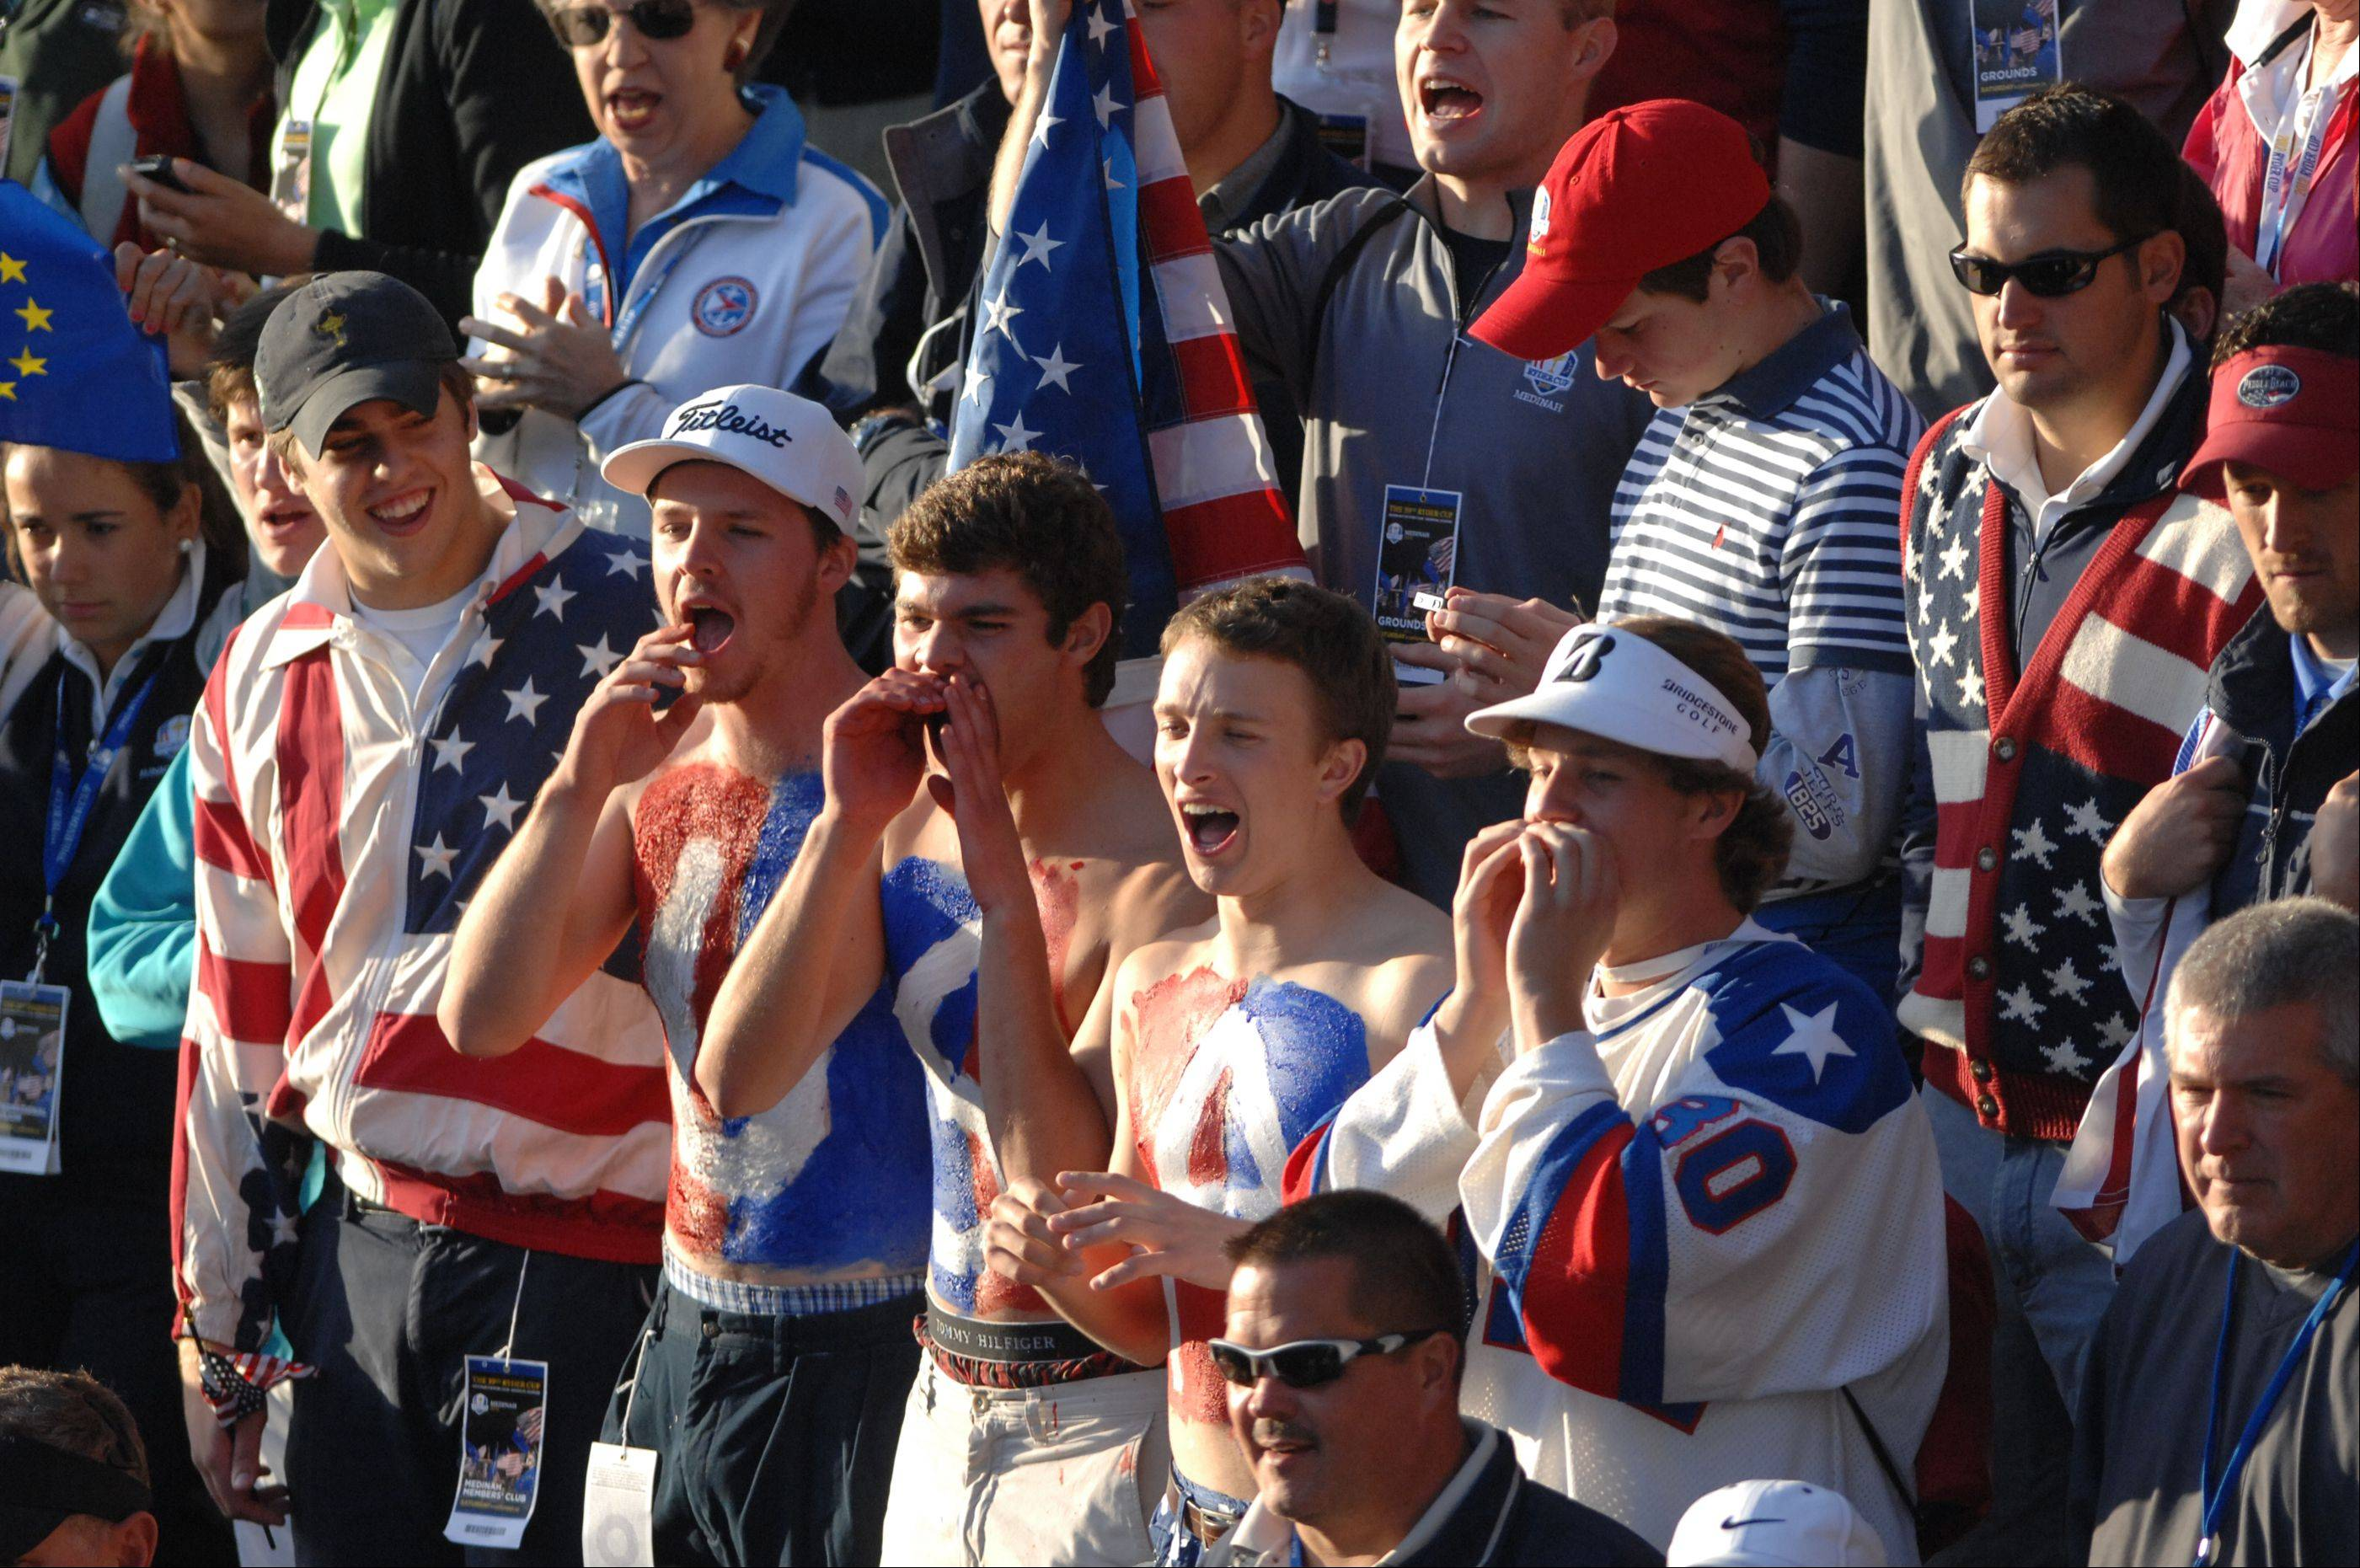 Team USA fans show their support at the first tee on day 2 of the 2012 Ryder Cup at Medinah Country Club.